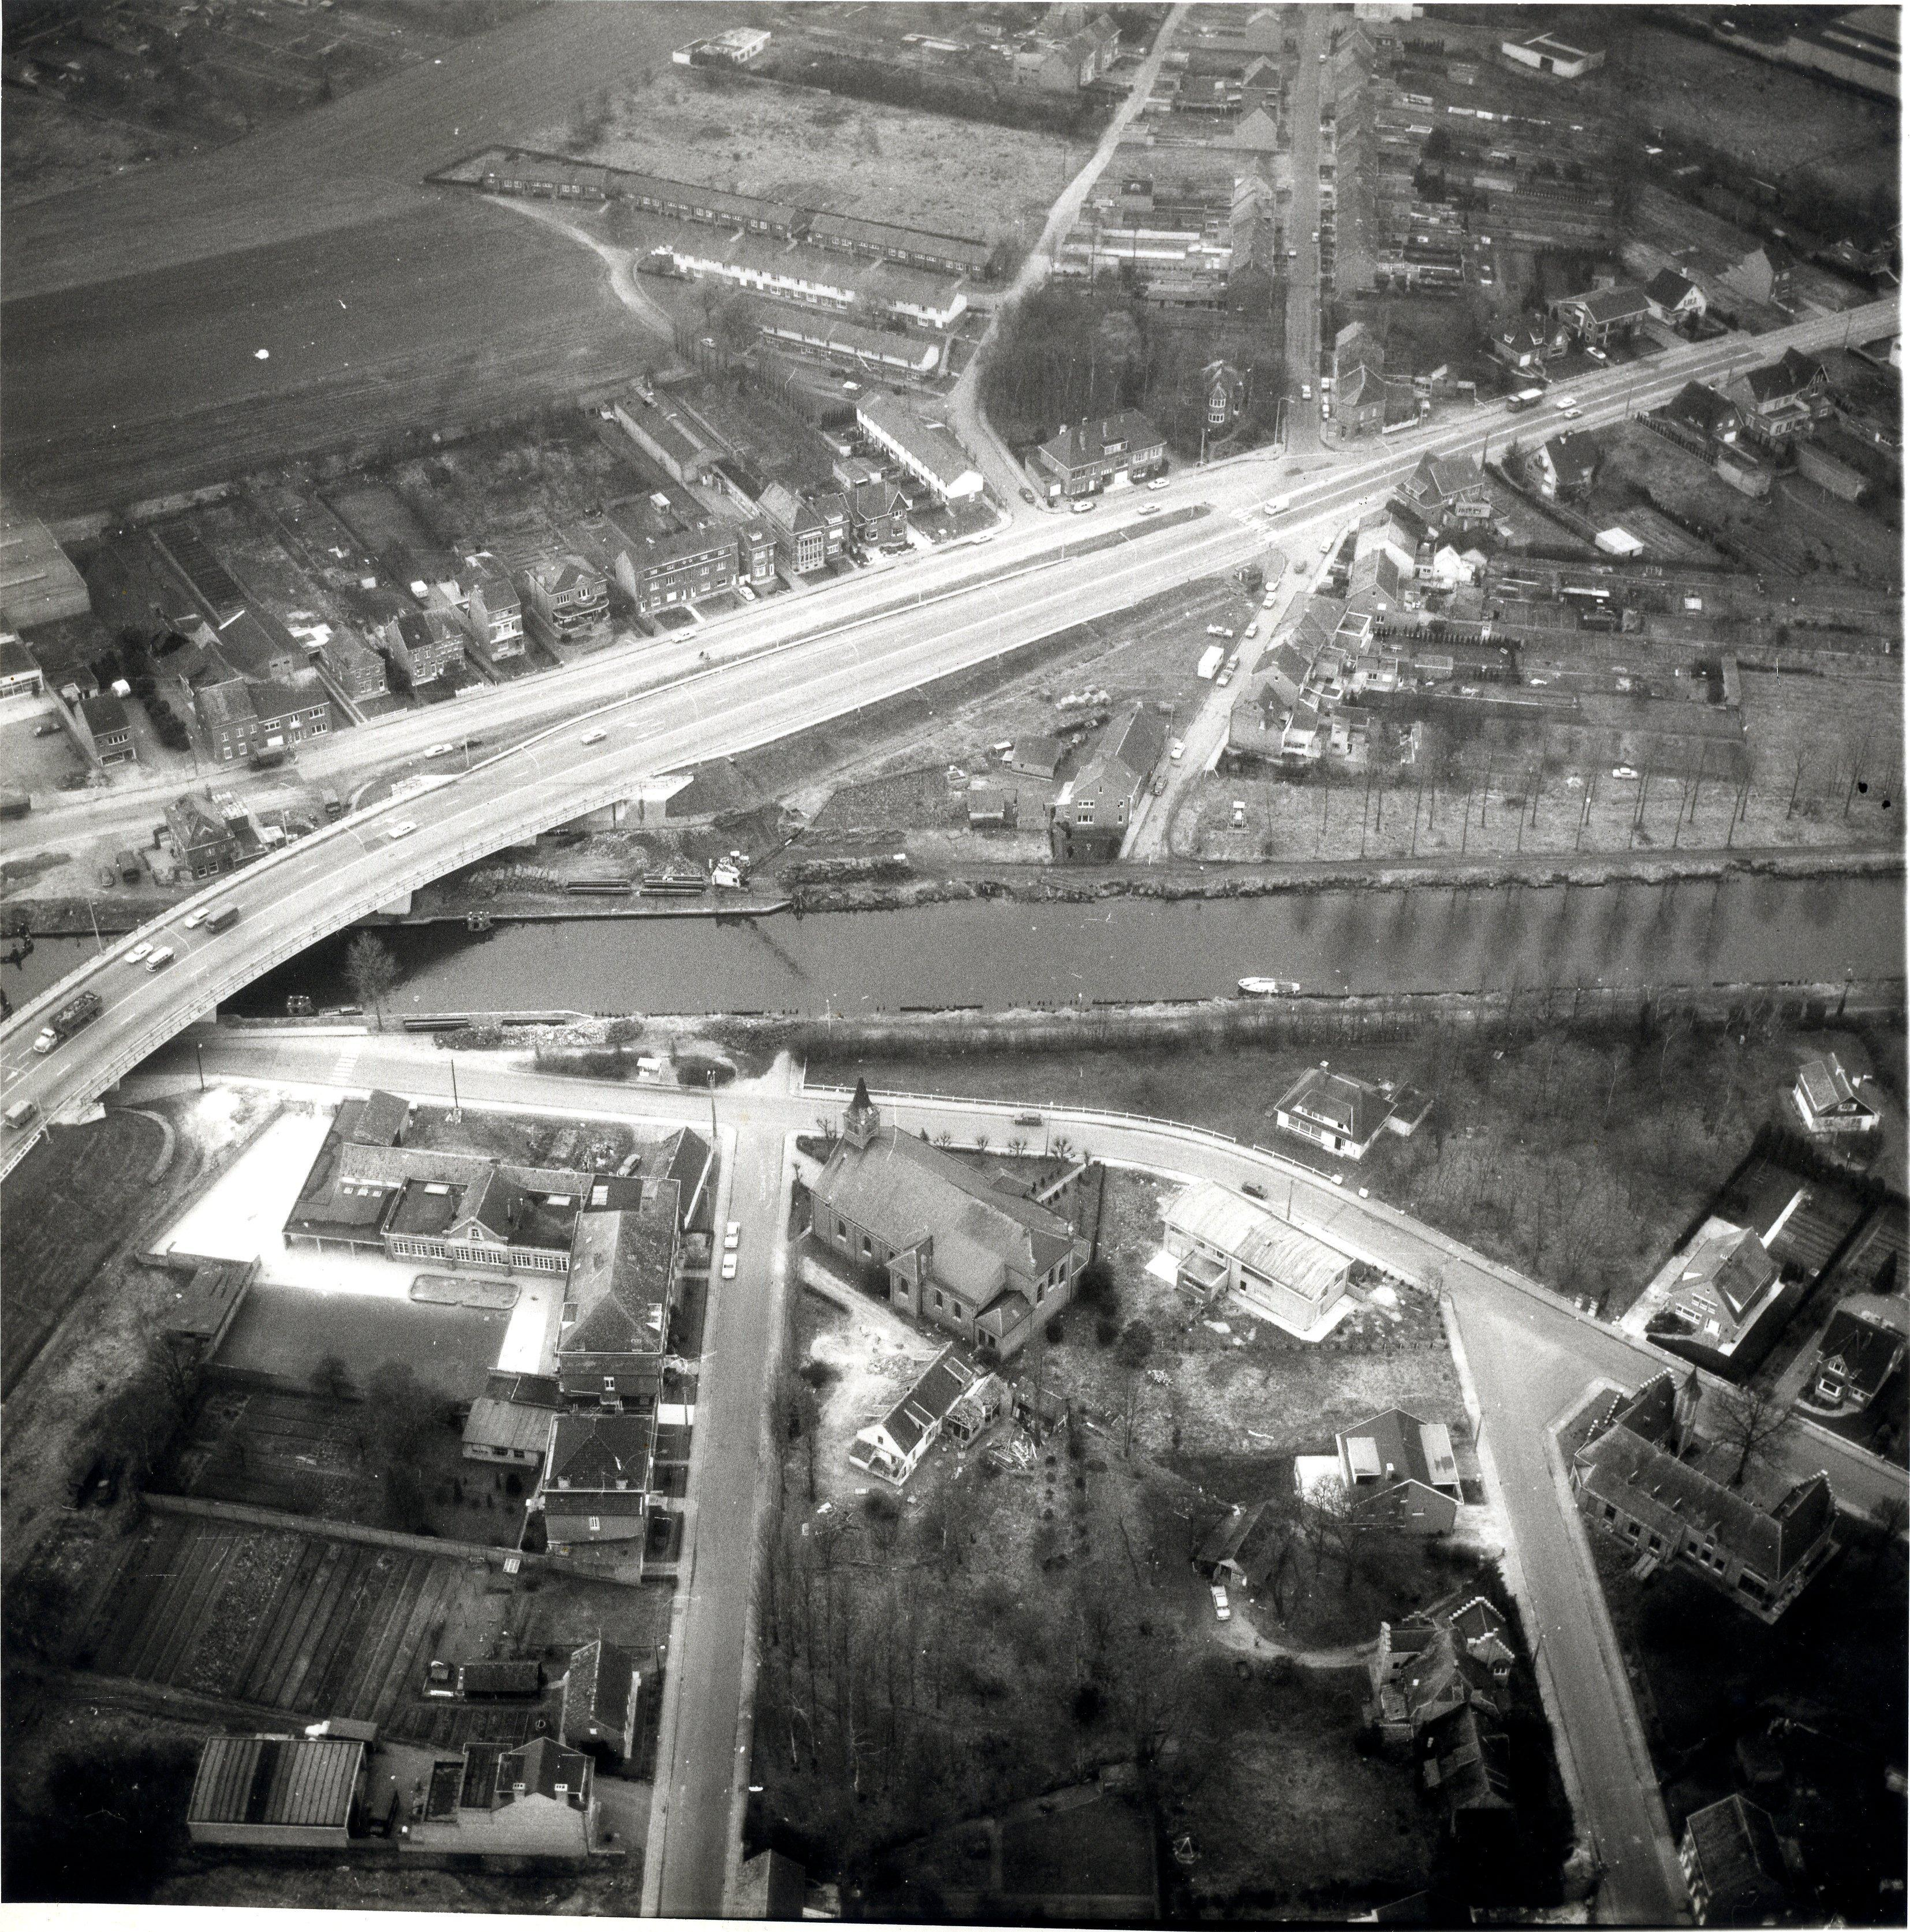 Het Battelcomplex, begin jaren 1970. © Stadsarchief Mechelen - beeldbankmechelen.be